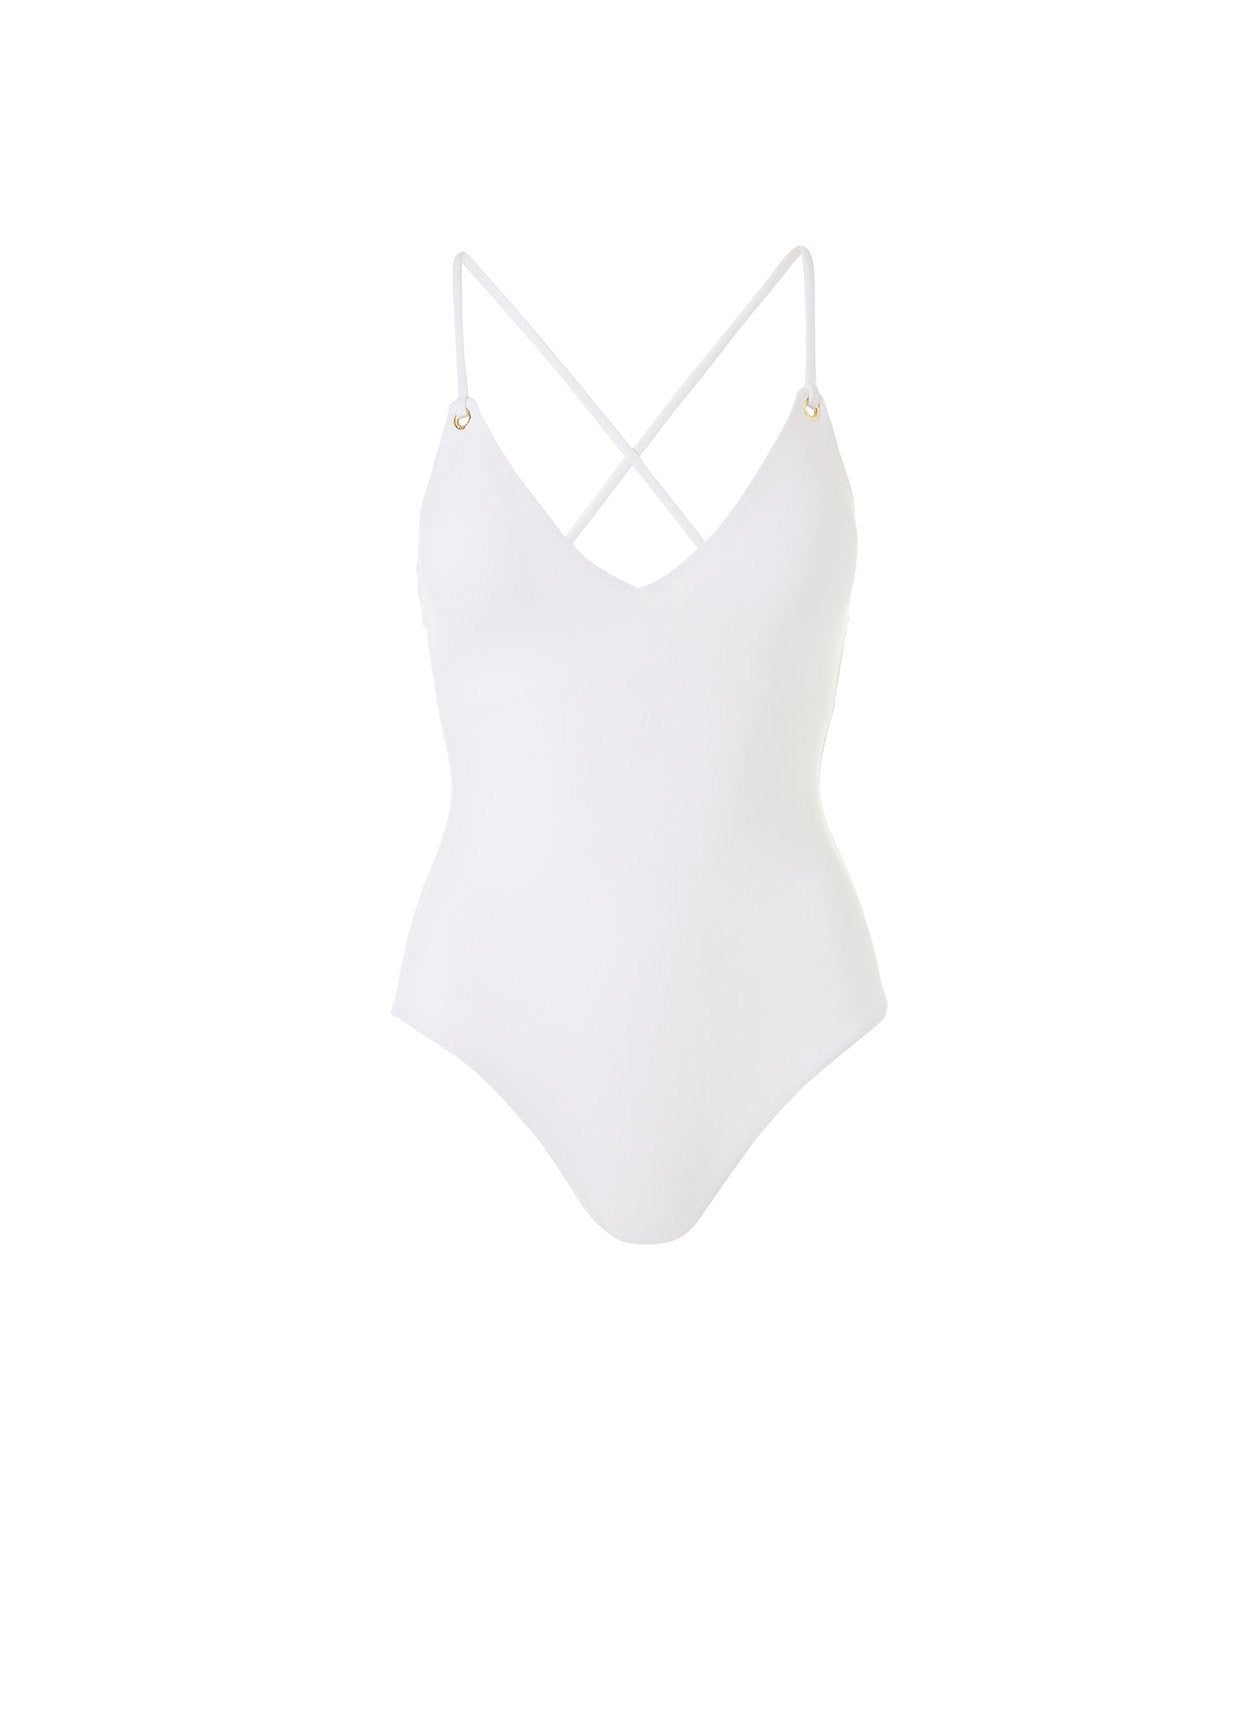 Catalina White Swimsuit